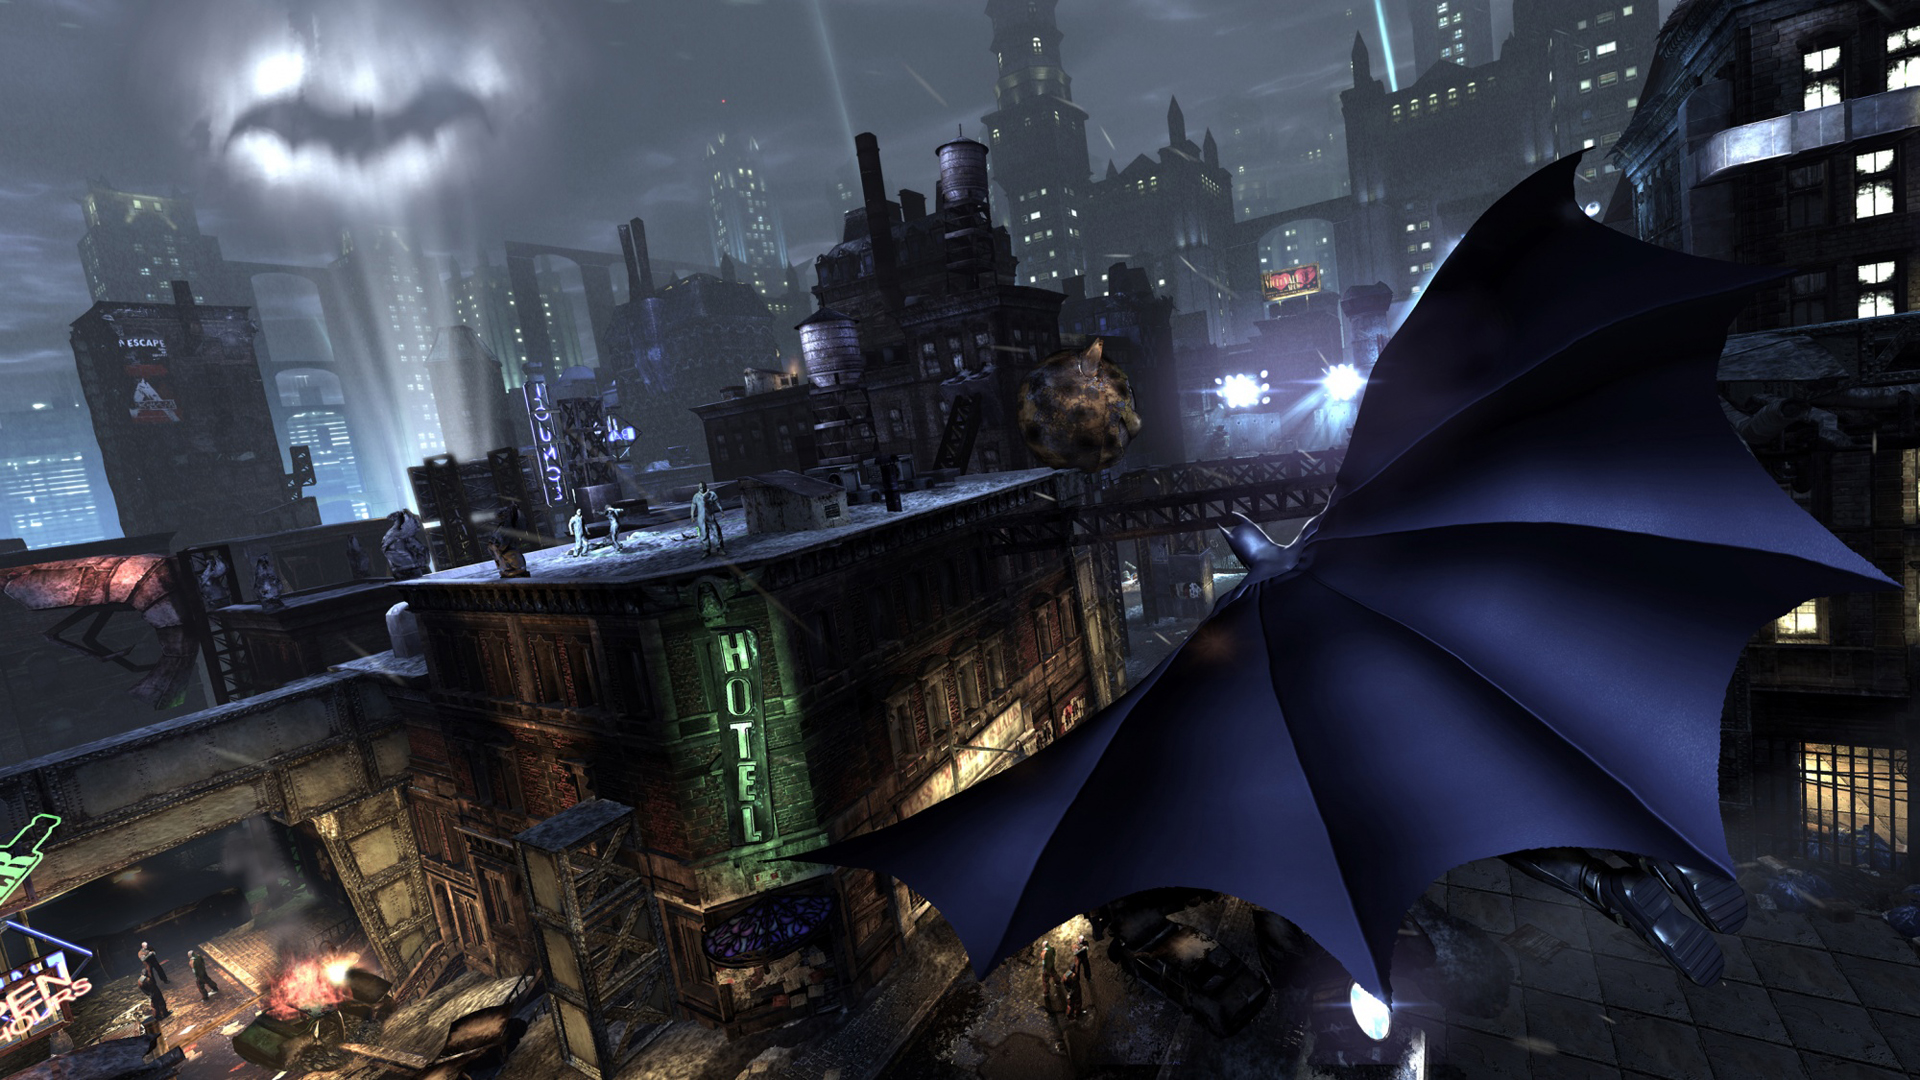 Batman Arkham City Wallpapers 1920x1080 City wallpapers arkham 1920x1080